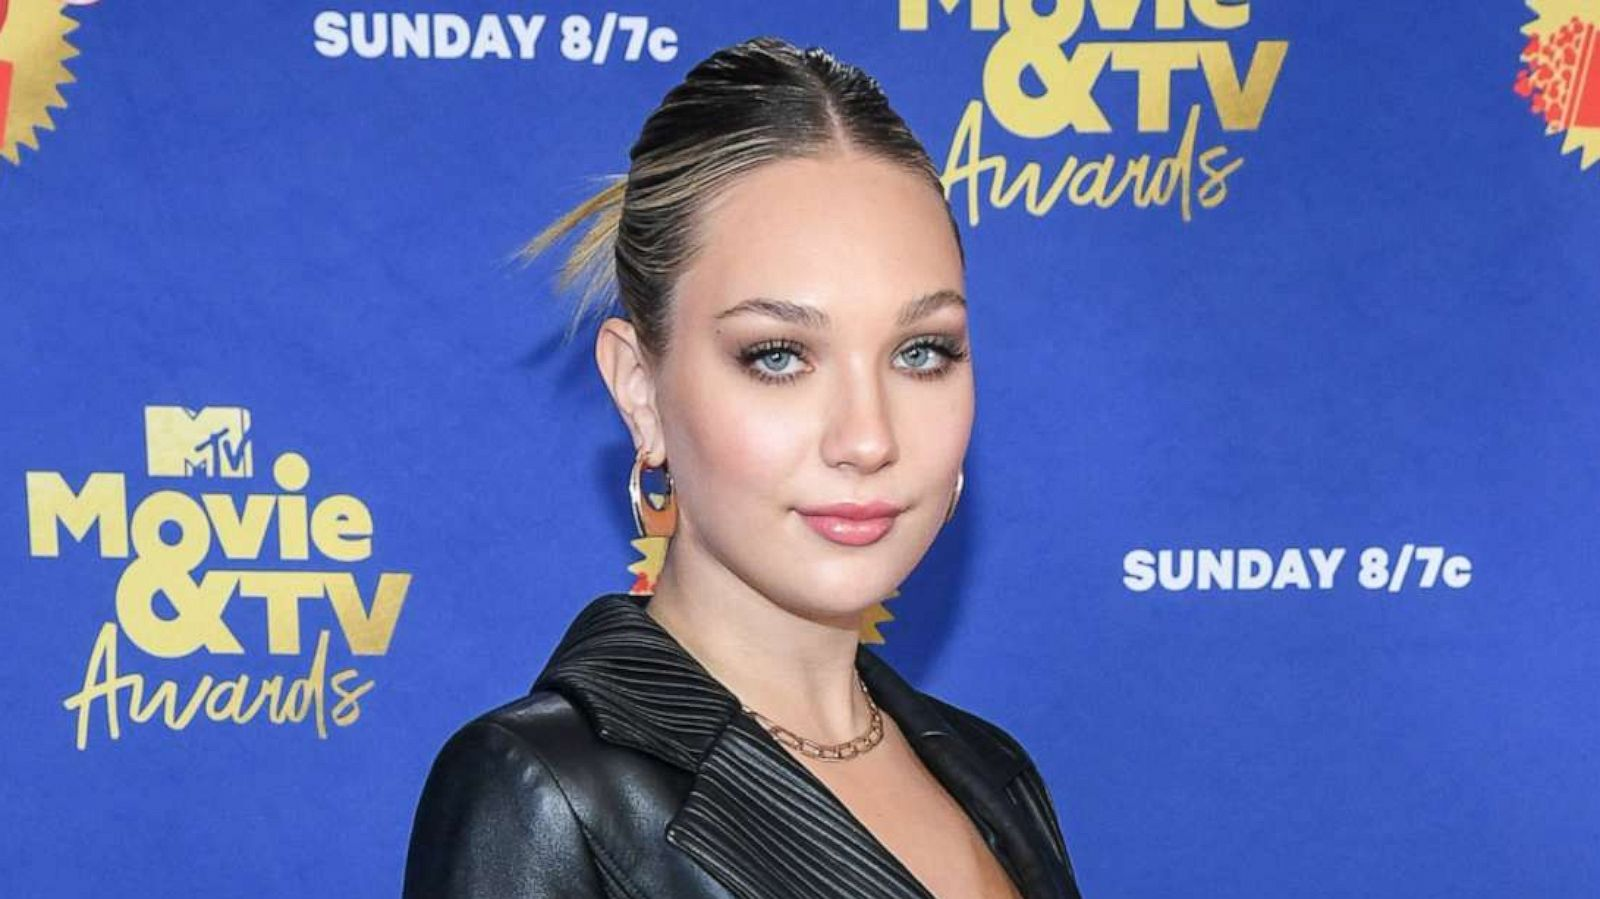 Maddie Ziegler says social media has become more of 'a toxic place' - ABC  News